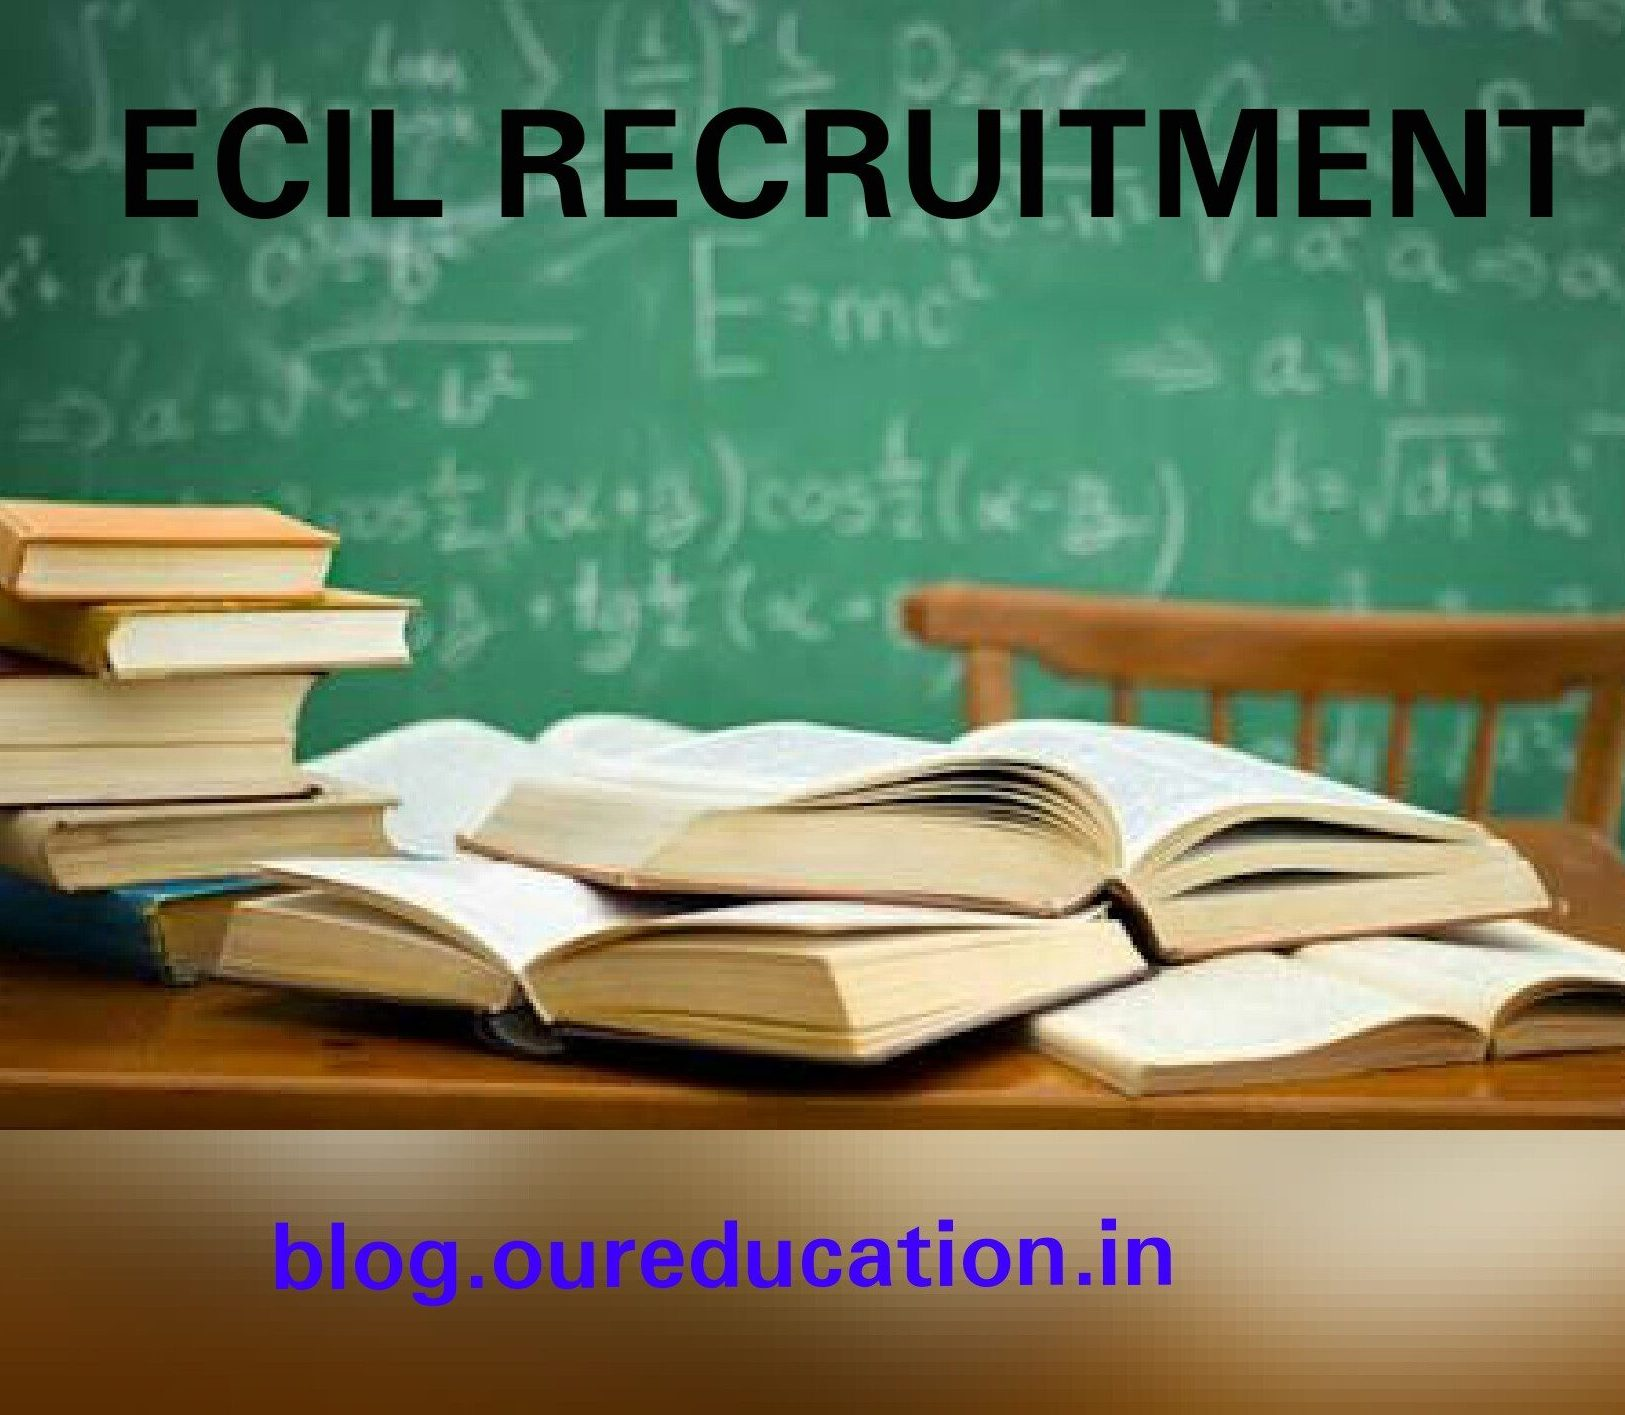 Ecil recruitment for 2017 ecil recruitment 2017 malvernweather Image collections